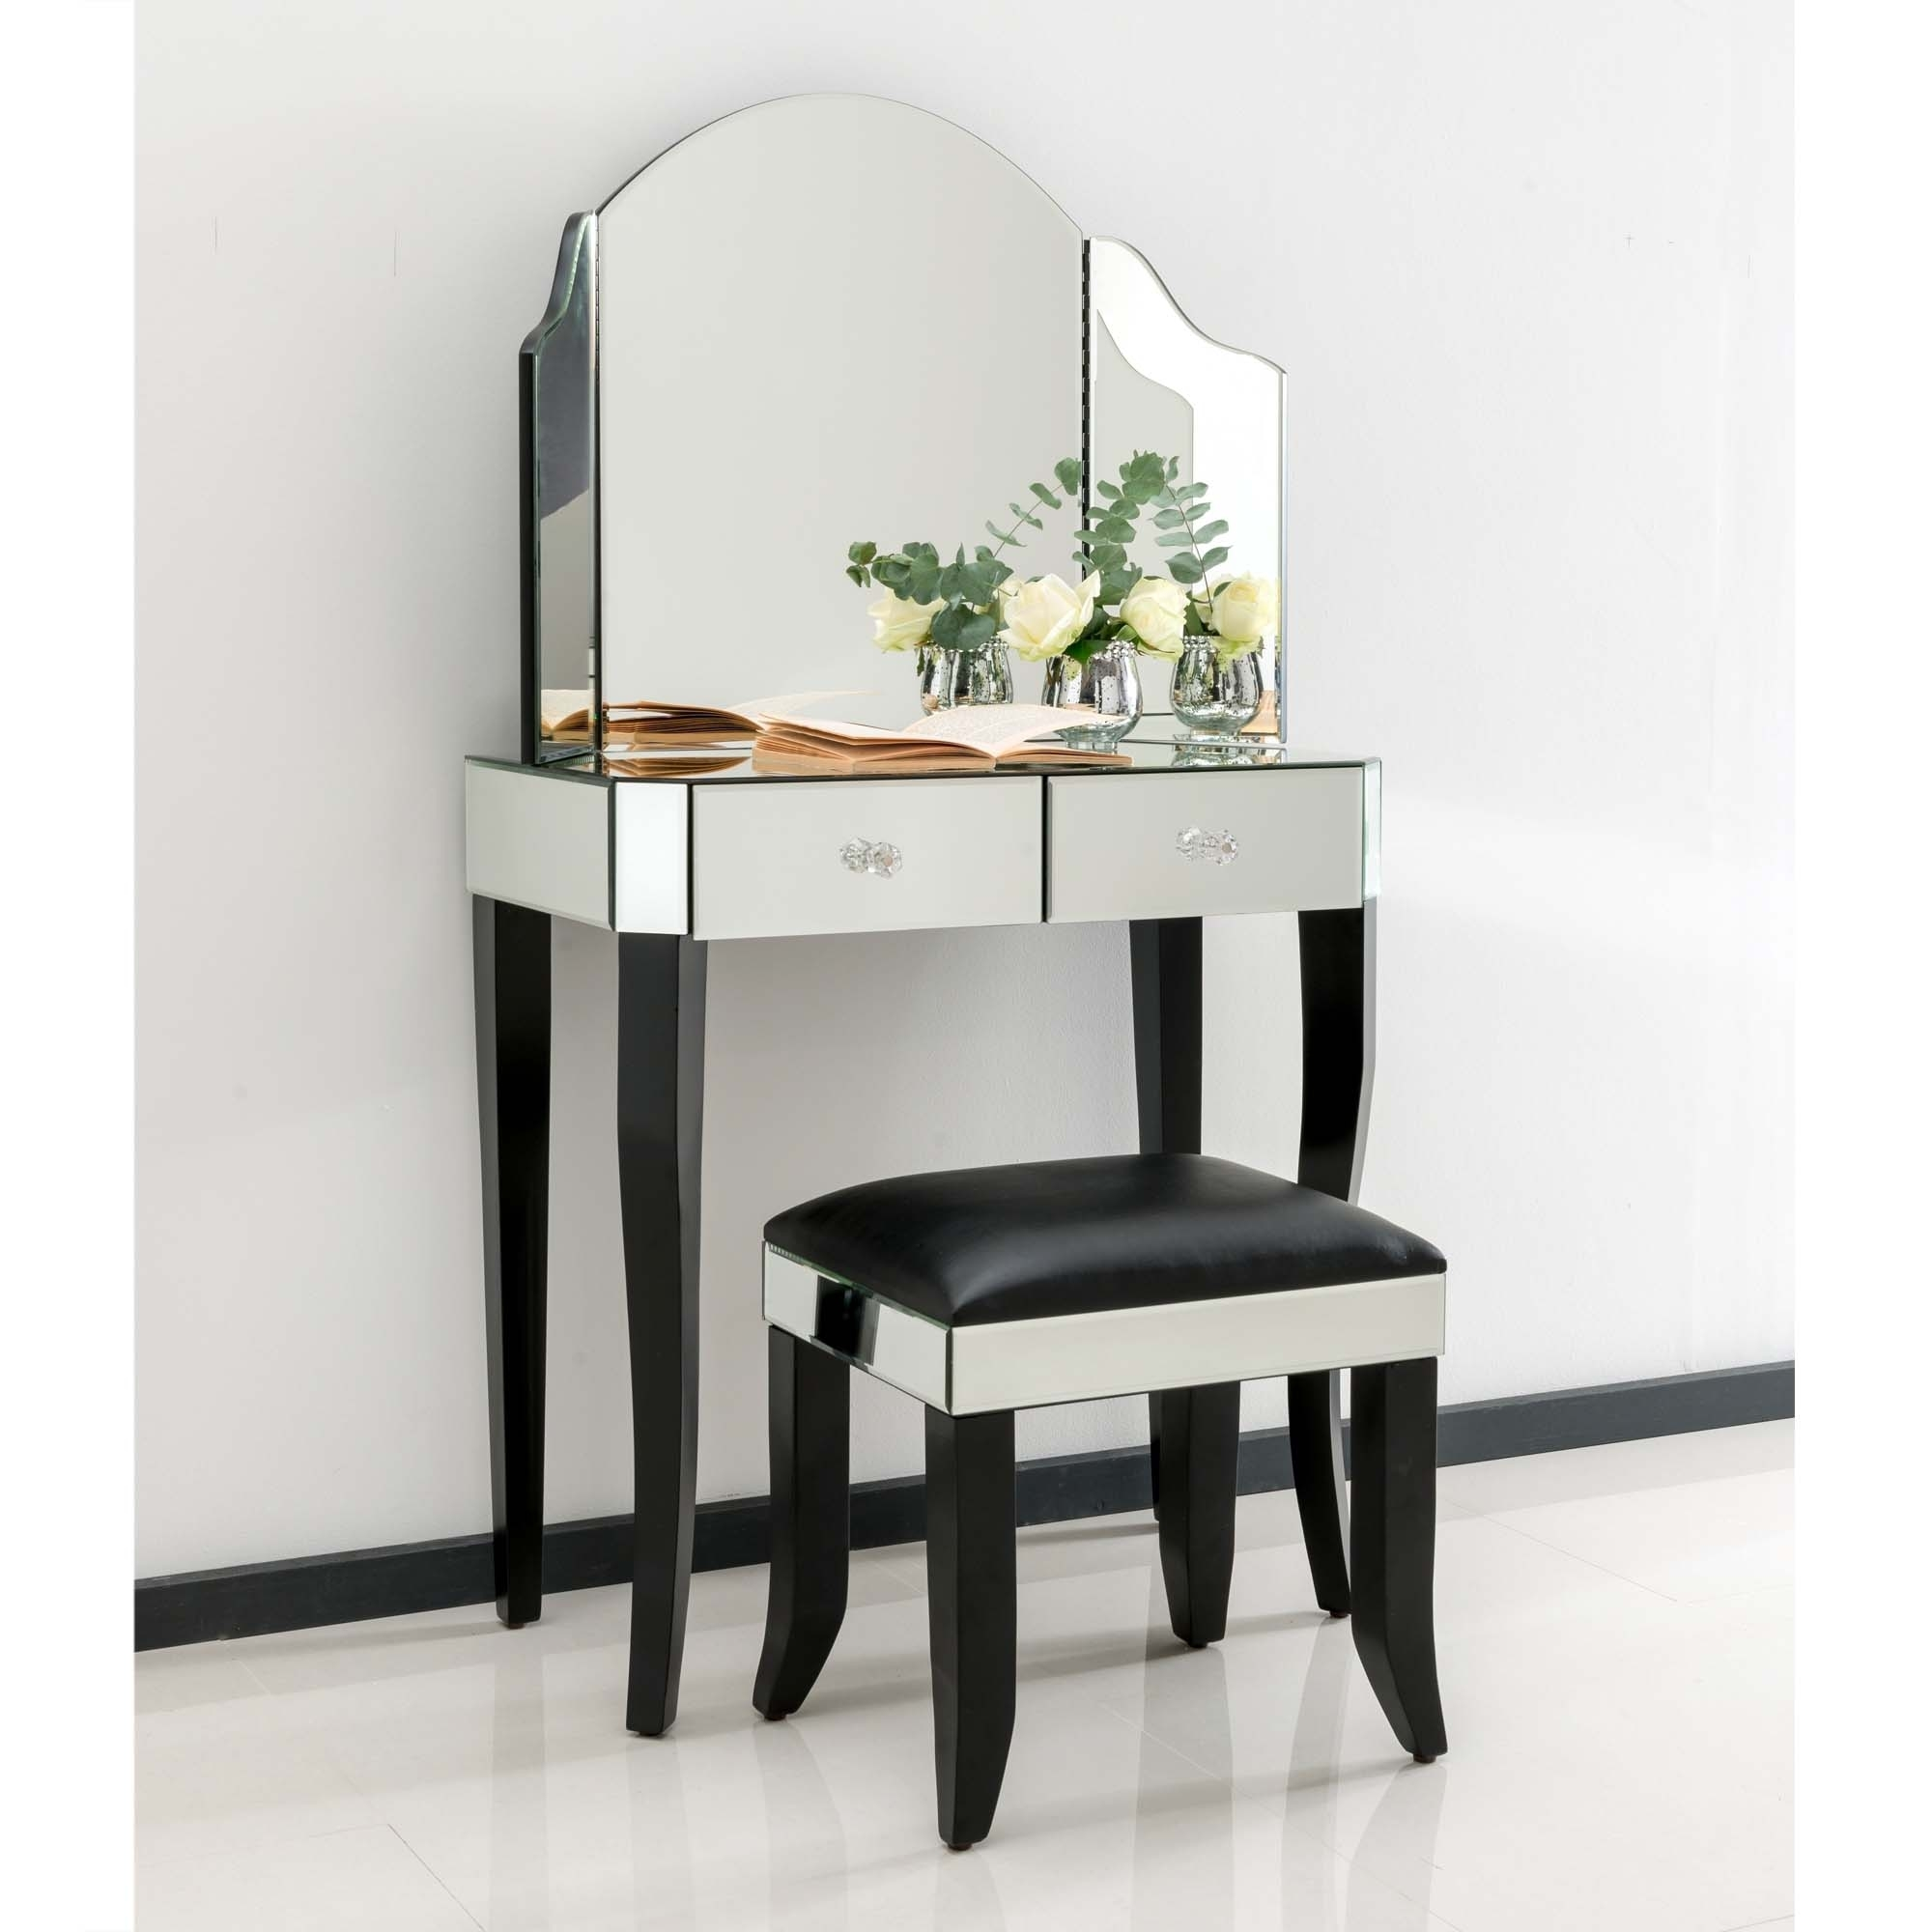 Sorrento mirrored dressing table set french furniture for Mirror table